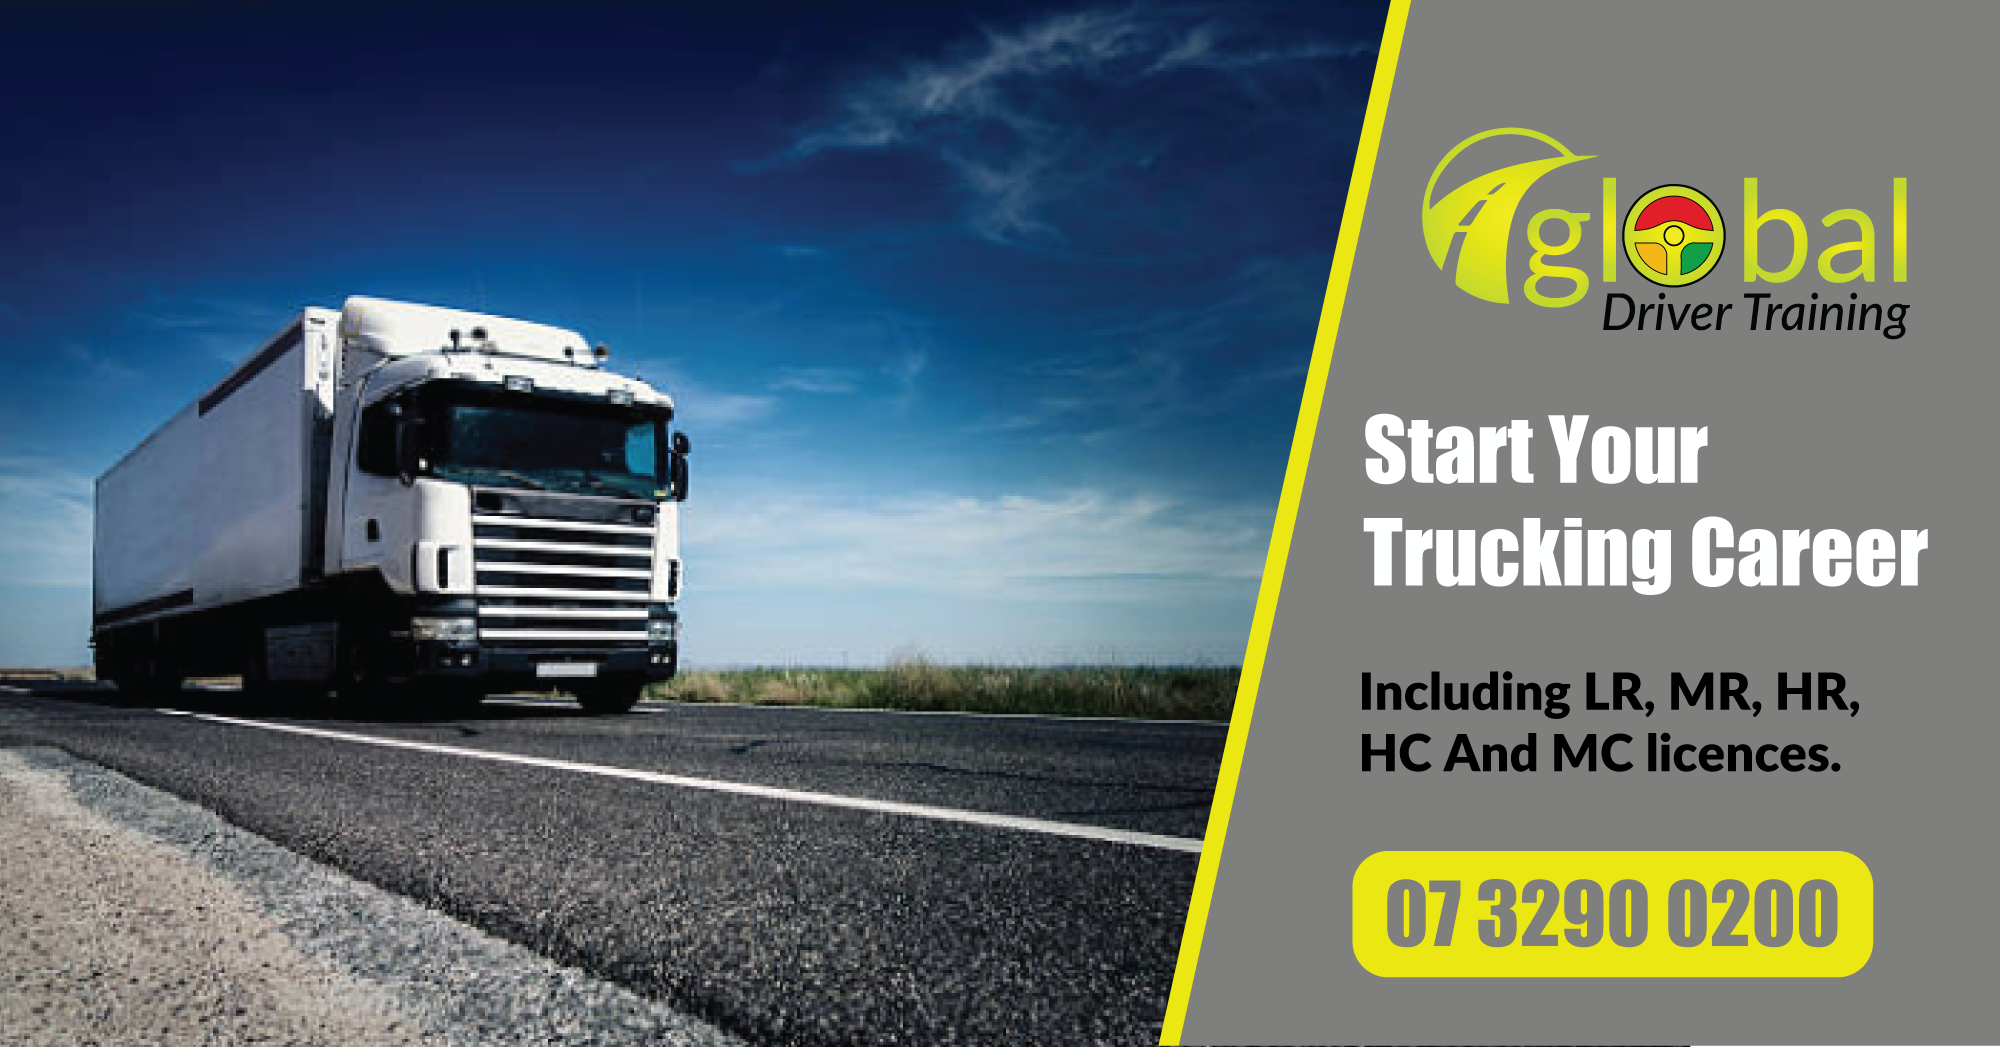 Career Trucking Start Your Trucking Career With Global Driver Training We Are